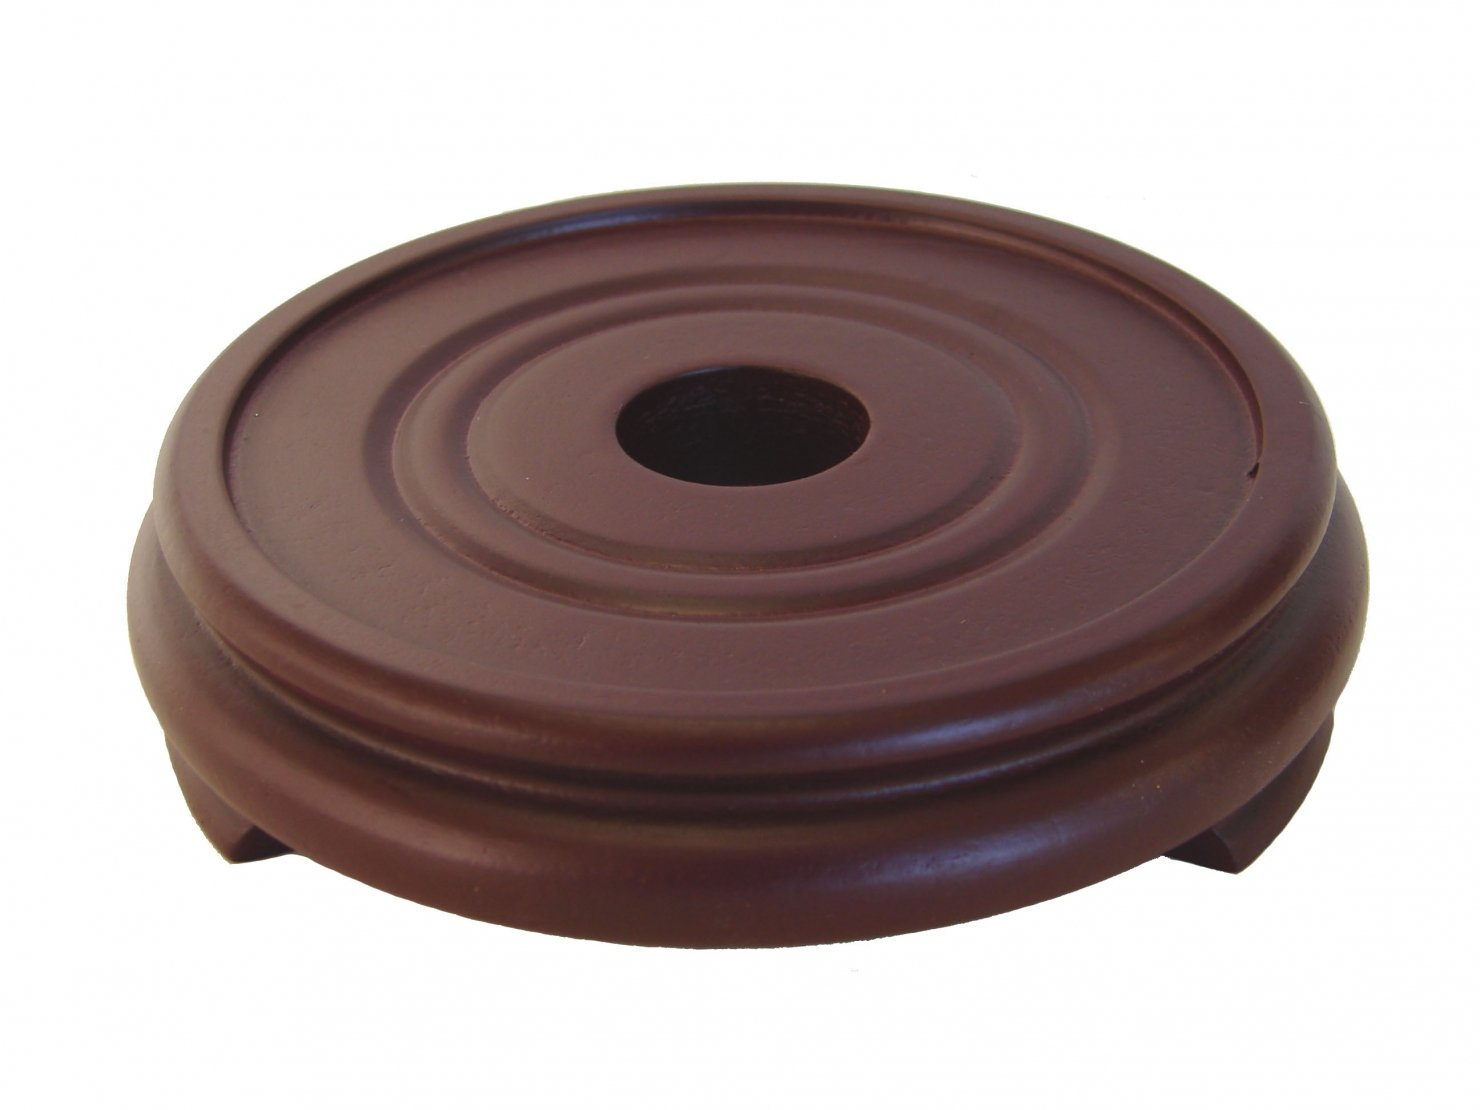 Feng Shui Import Rubber Finished Round Wooden Stand, Brown, 7 L